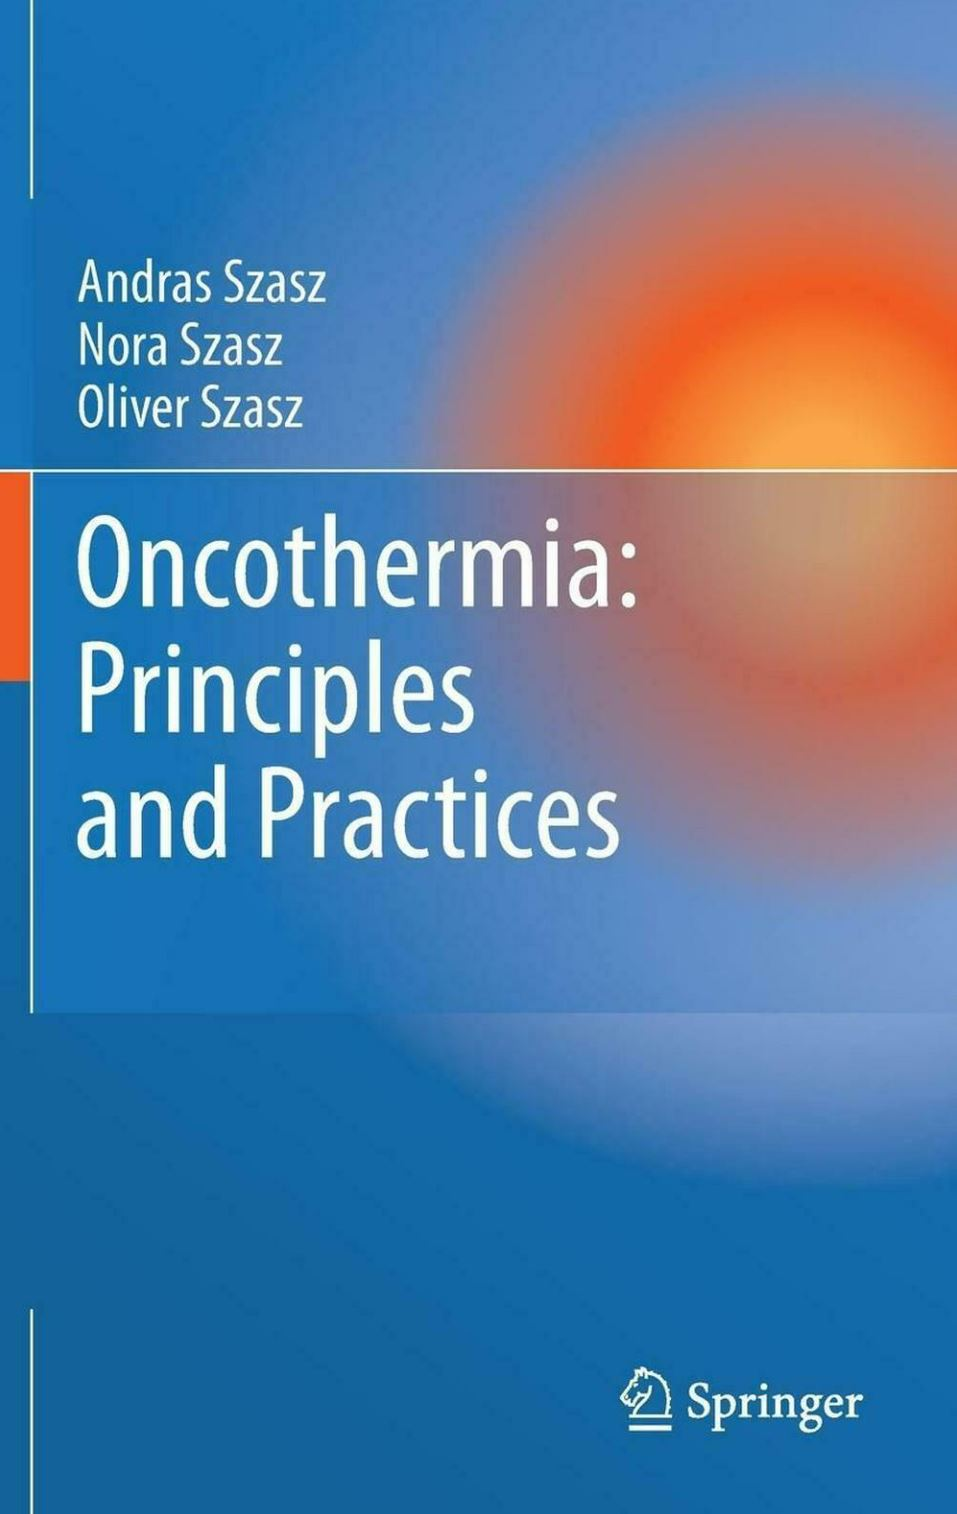 Principles and Practices book cover